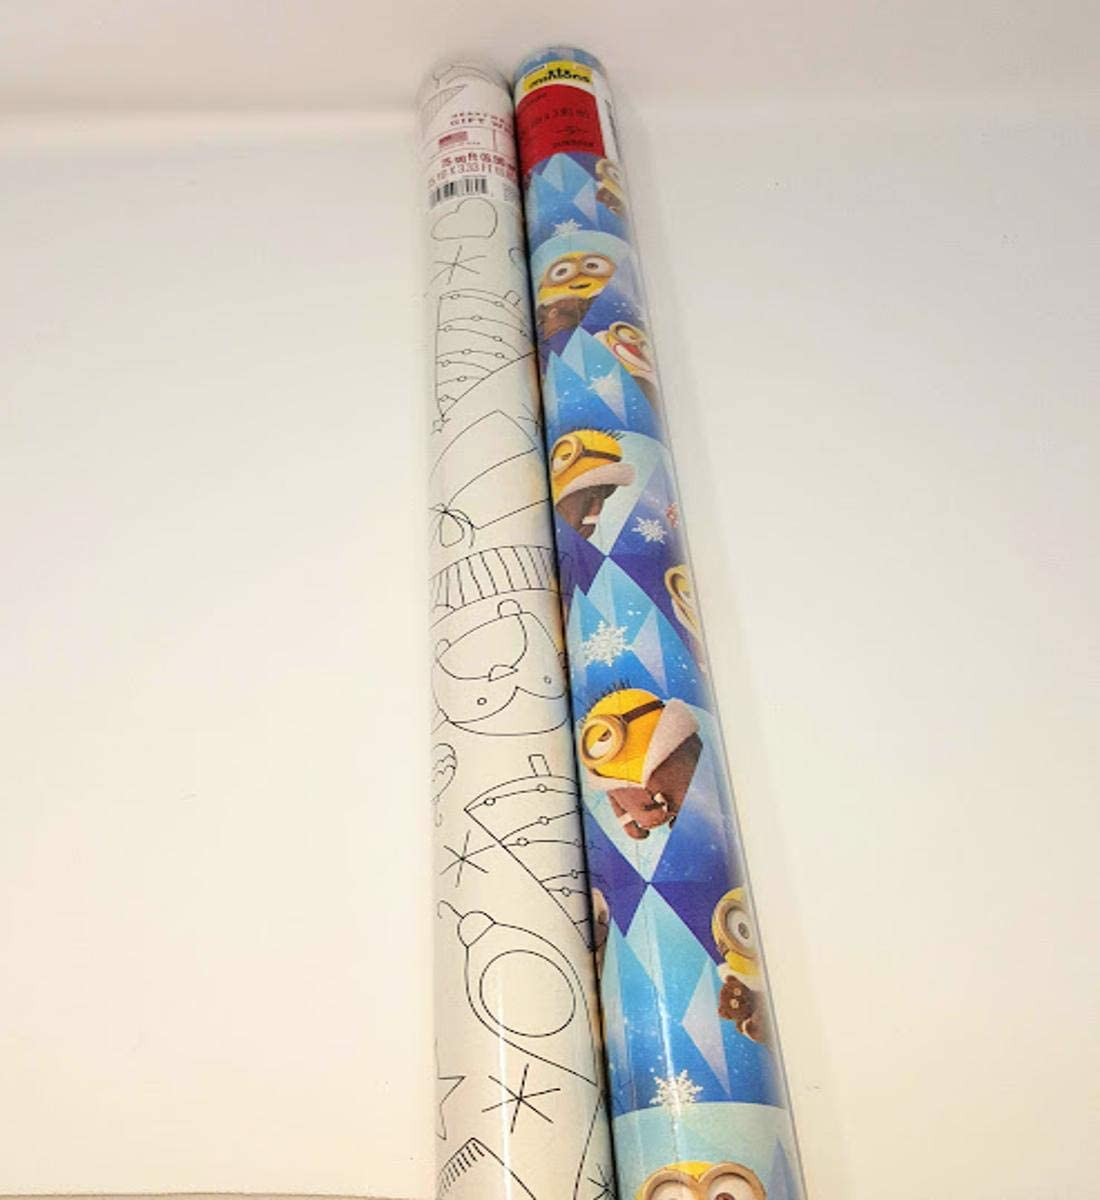 Wrapping Paper Roll Christmas 40 Sq Ft Minion Despicable Me Minions